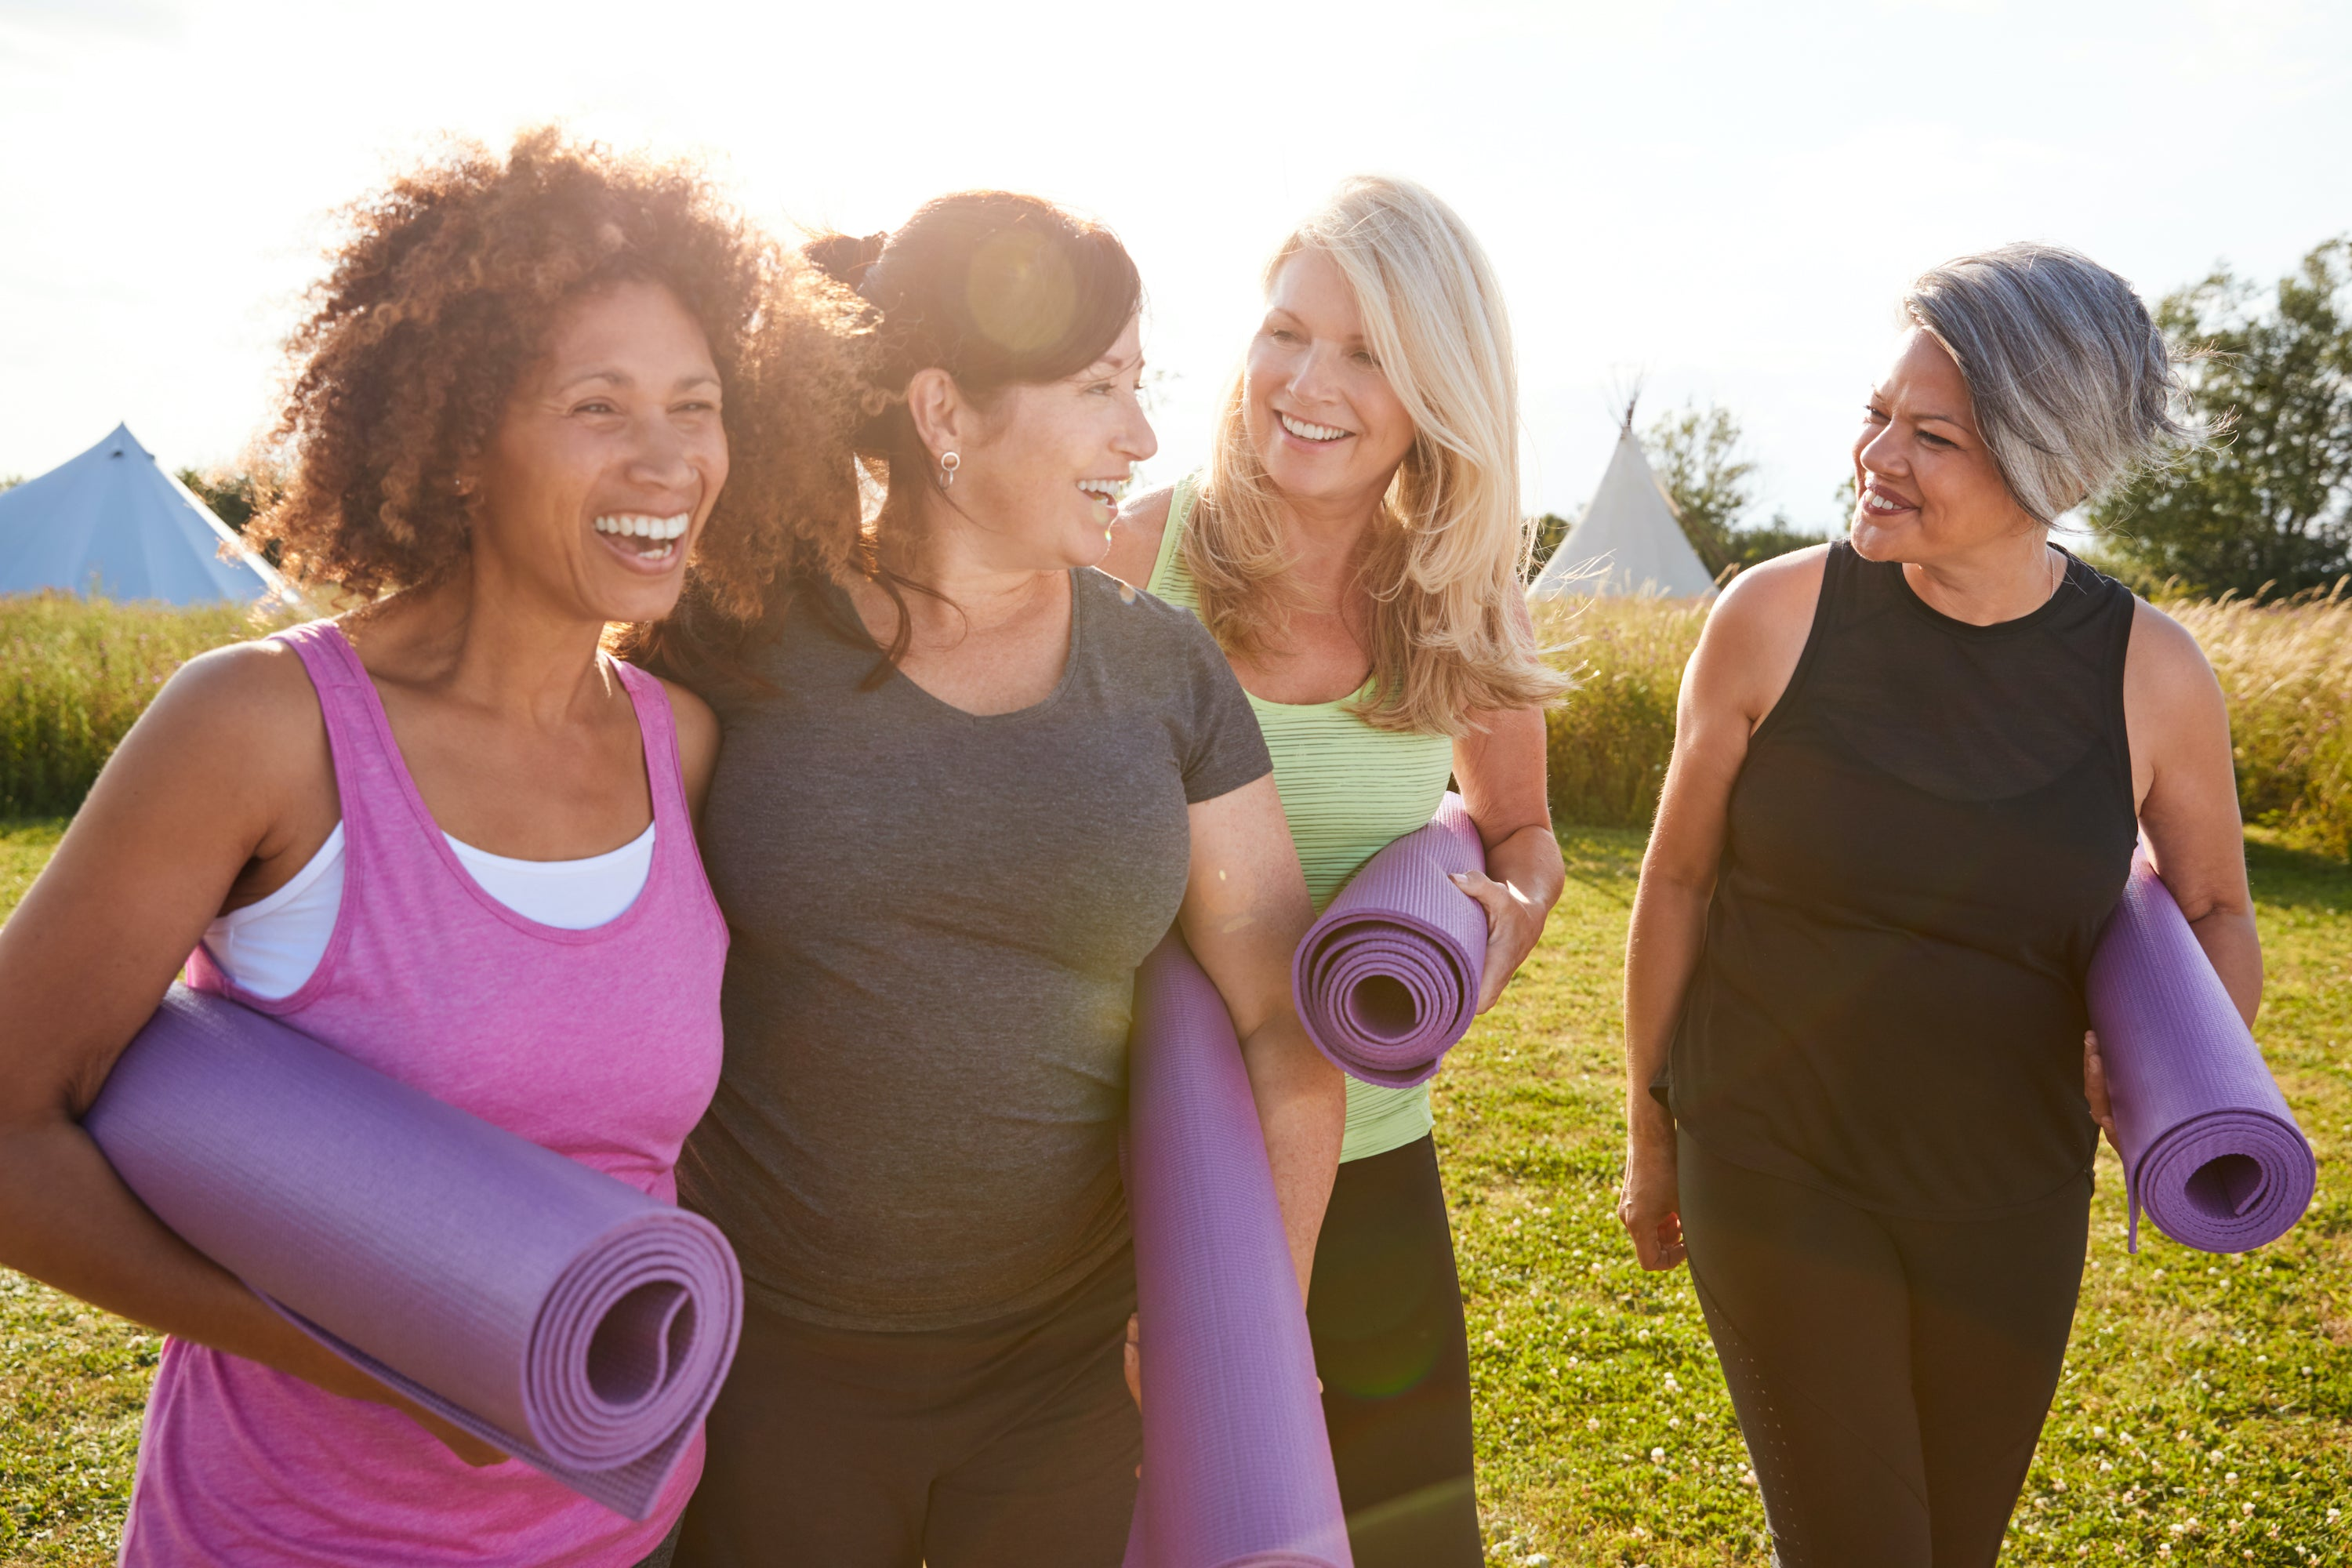 group of four middle-aged women of varying race smiling and carrying yoga mats while walking through grass field